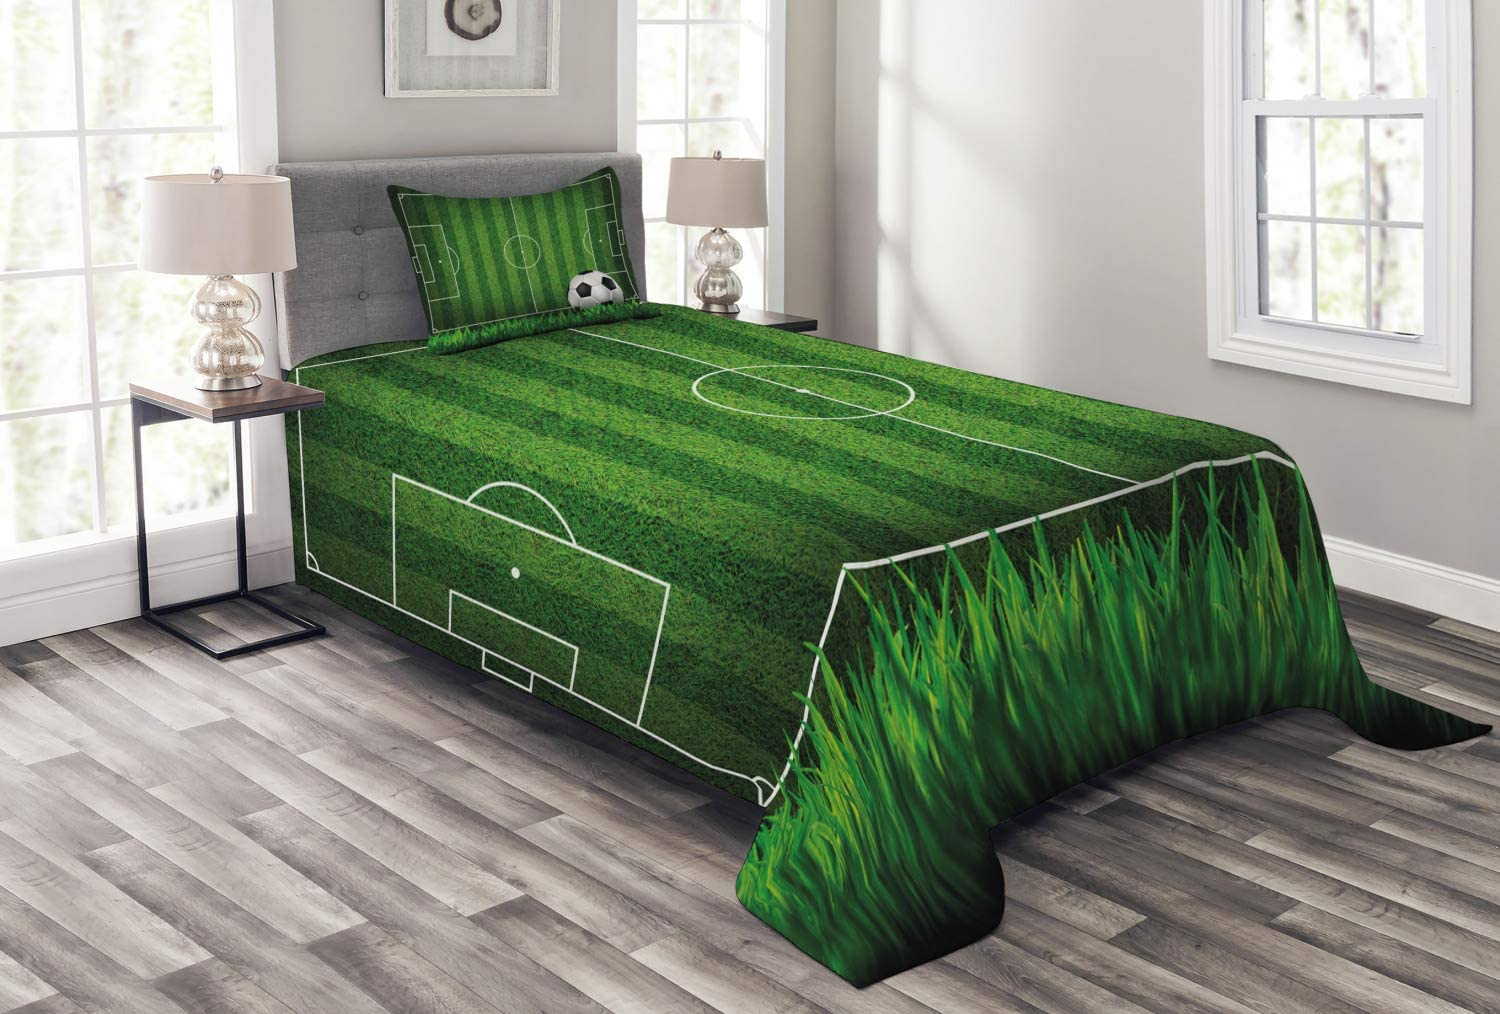 Lunarable Sports Bedspread, Green Grass Field Soccer Playground with The Ball Scheme Stripes Strategy, Decorative Quilted 2 Piece Coverlet Set with Pillow Sham, Twin Size, White Black